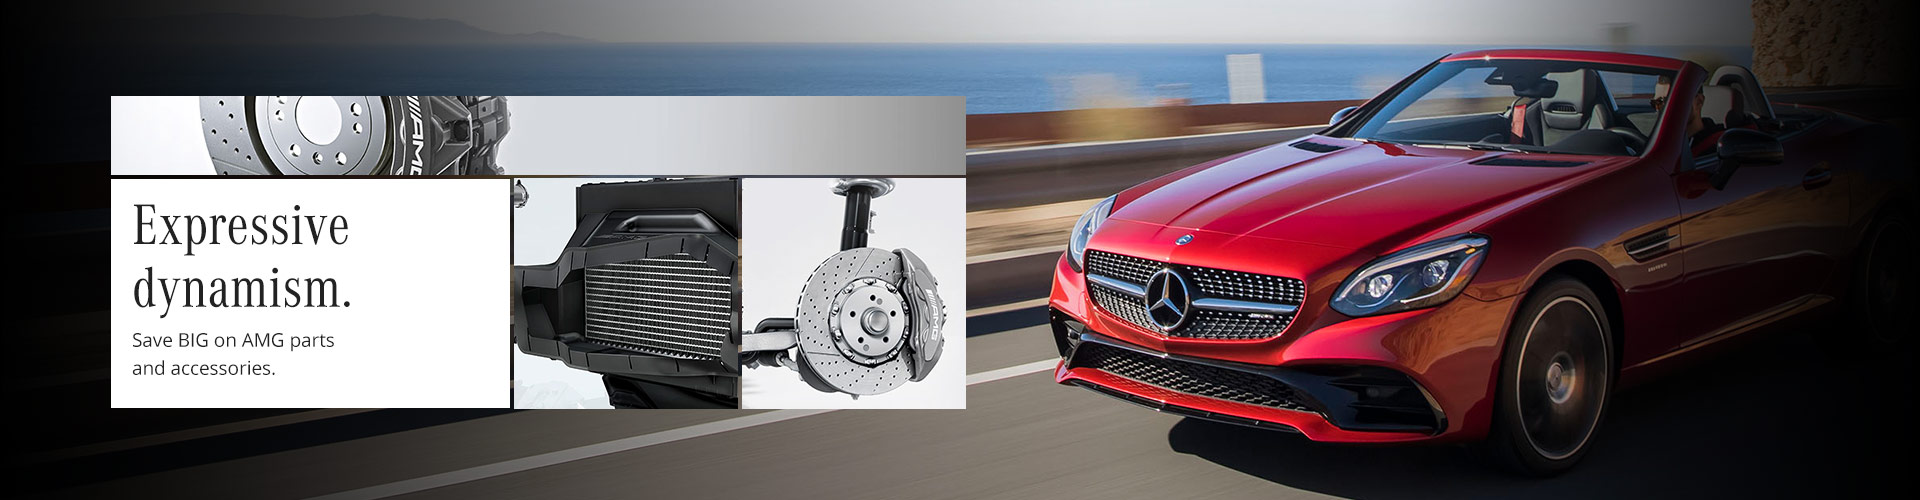 Mercedes-Benz AMG parts and accessories